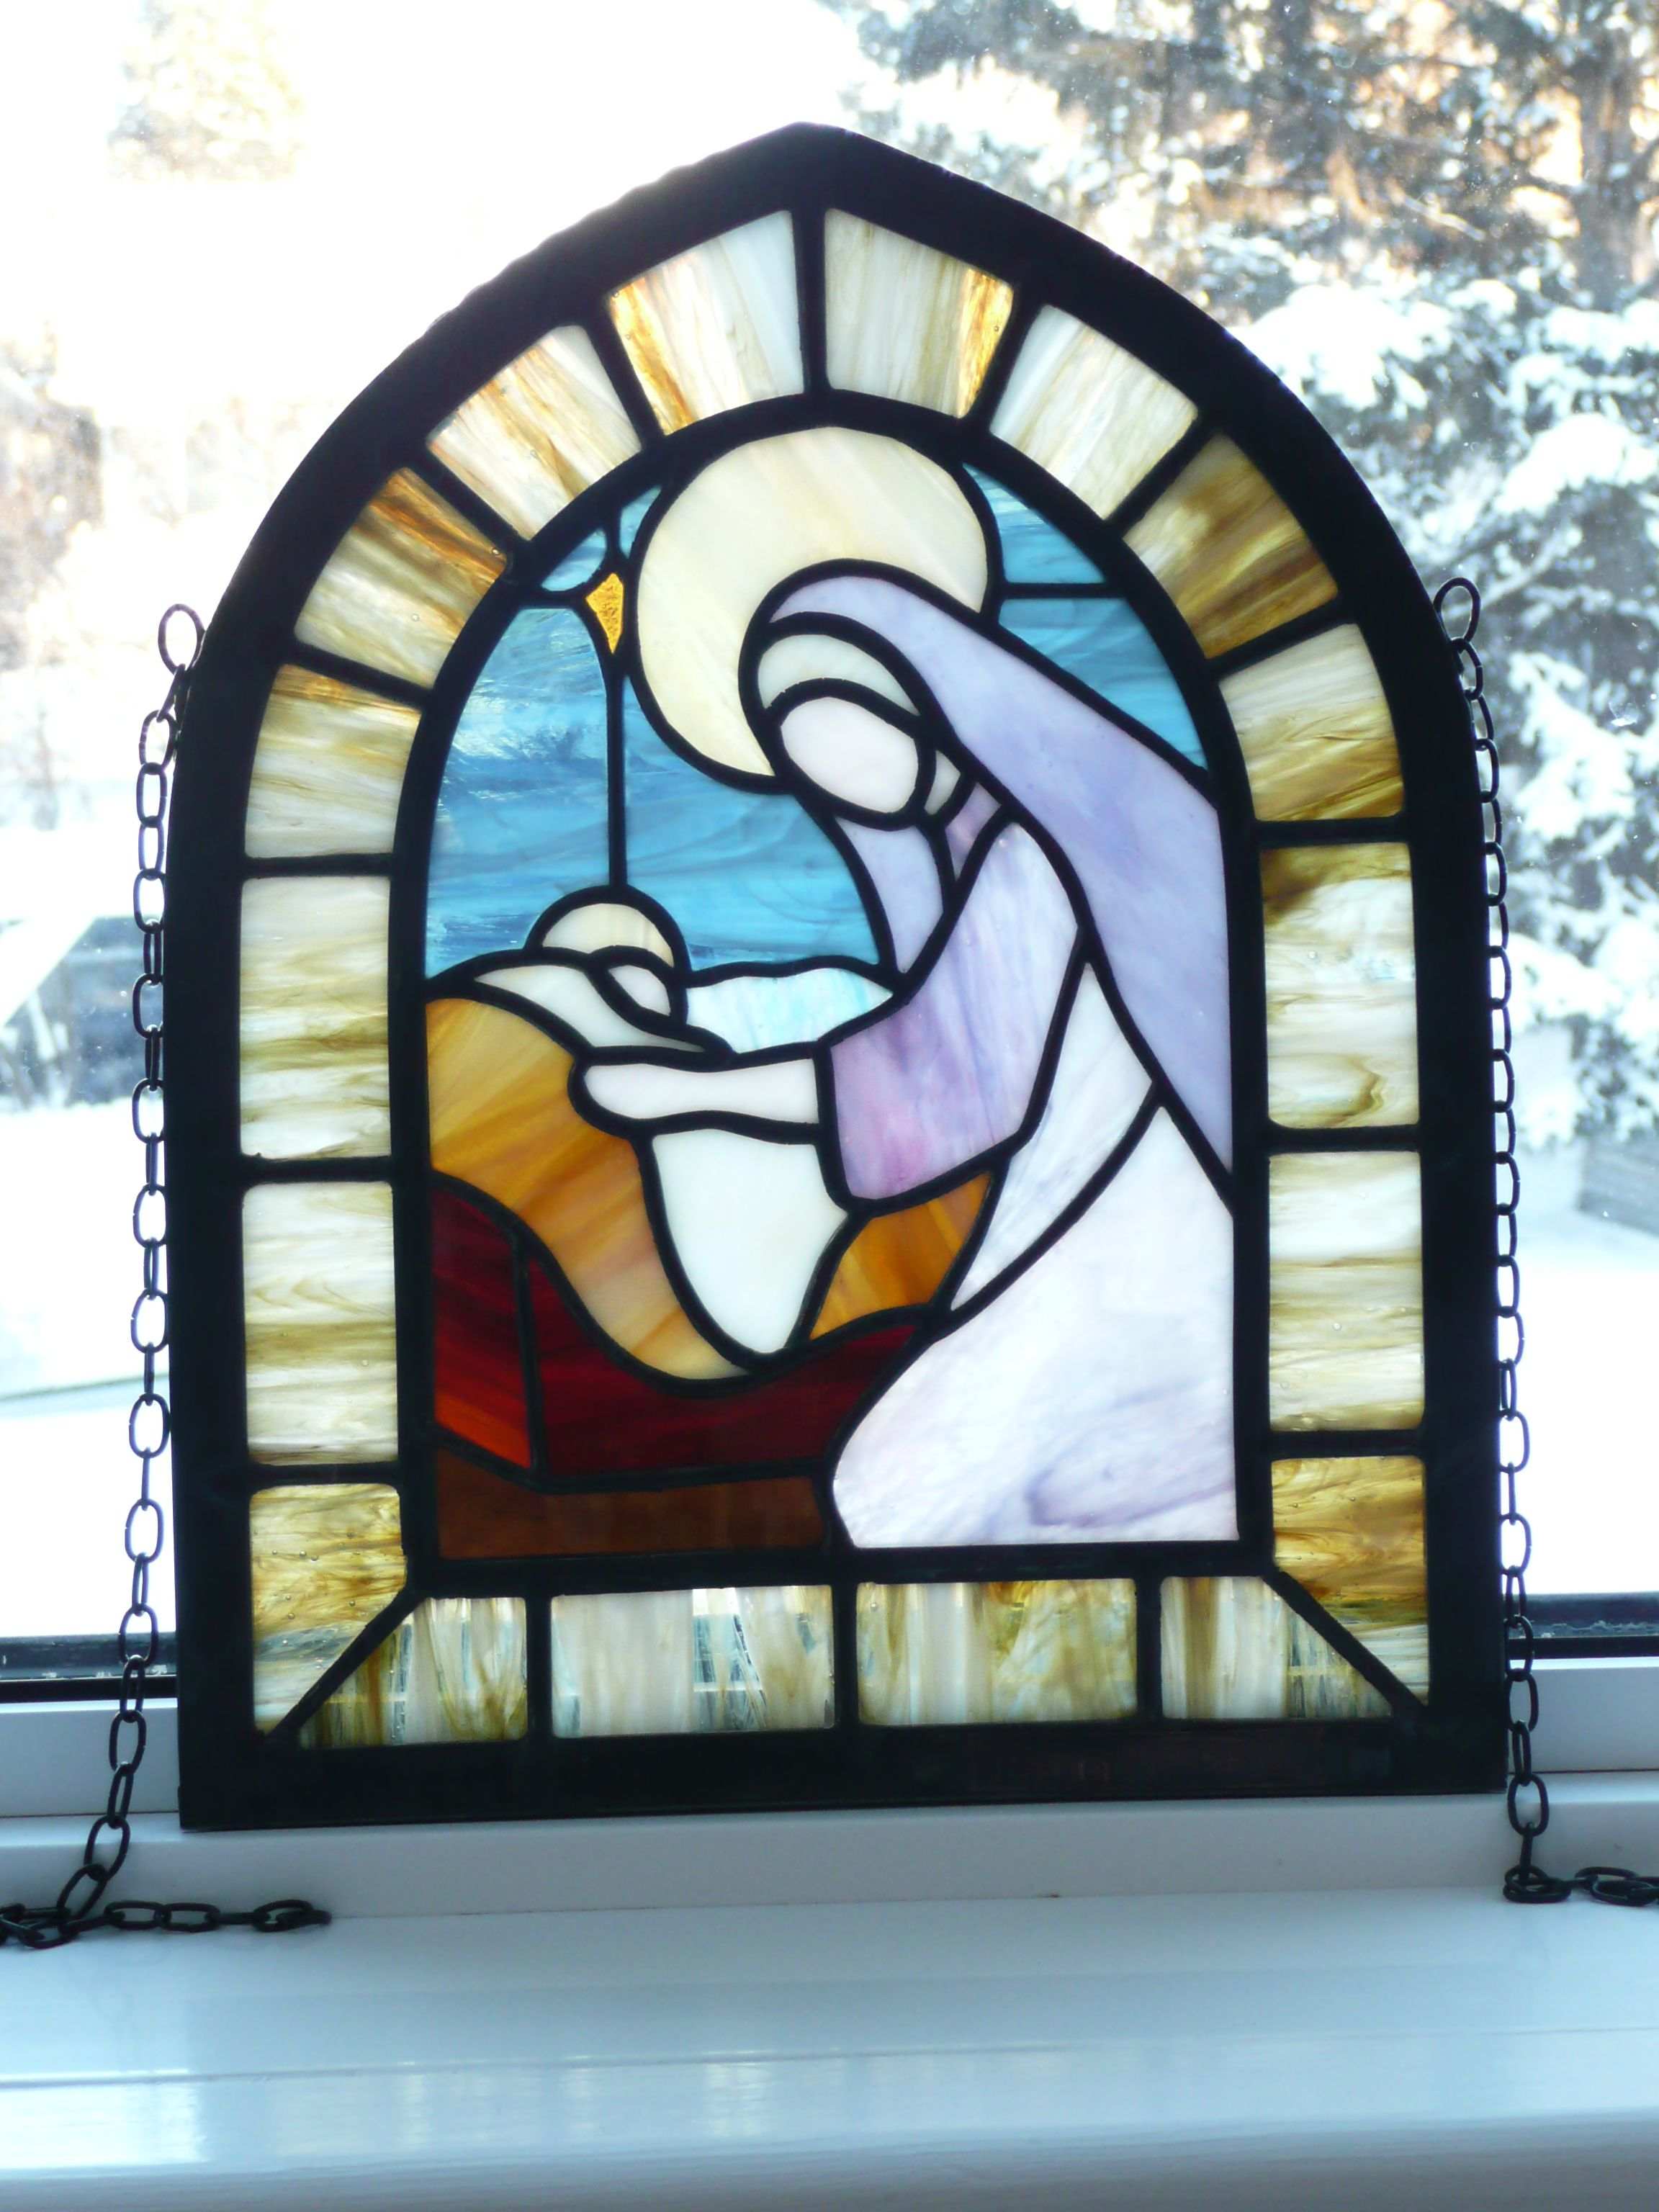 Pin By Willetta Rickey On Images Madonna And Child Madonna And Child Stained Glass Nativity Ornaments